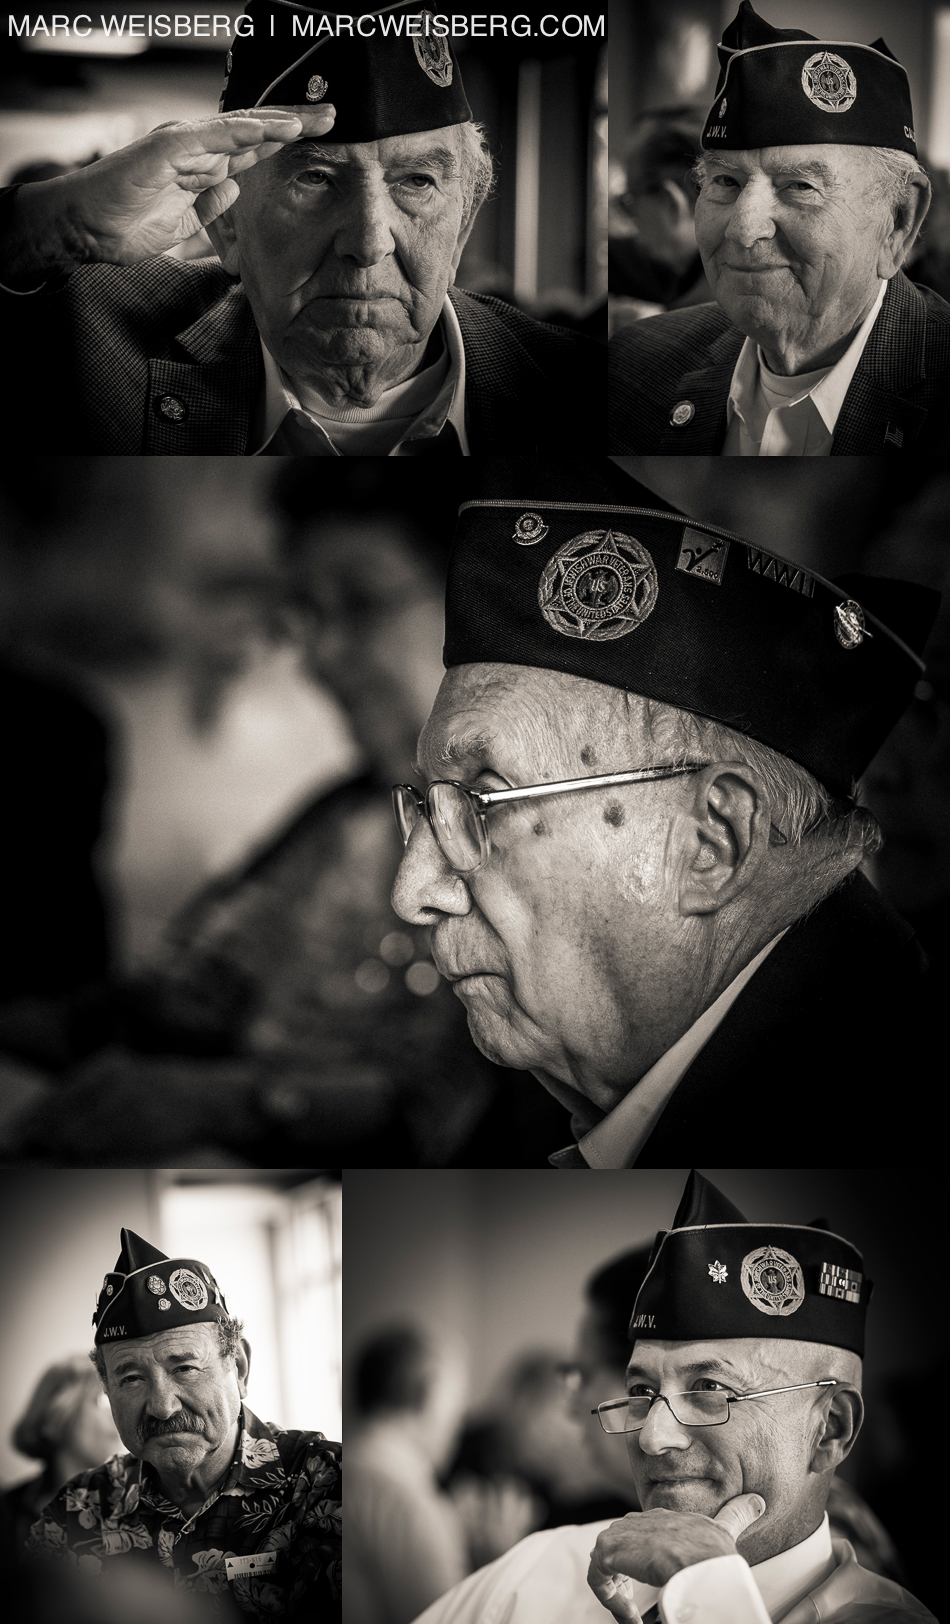 historic black and white portraits of jewish world ward II veterans